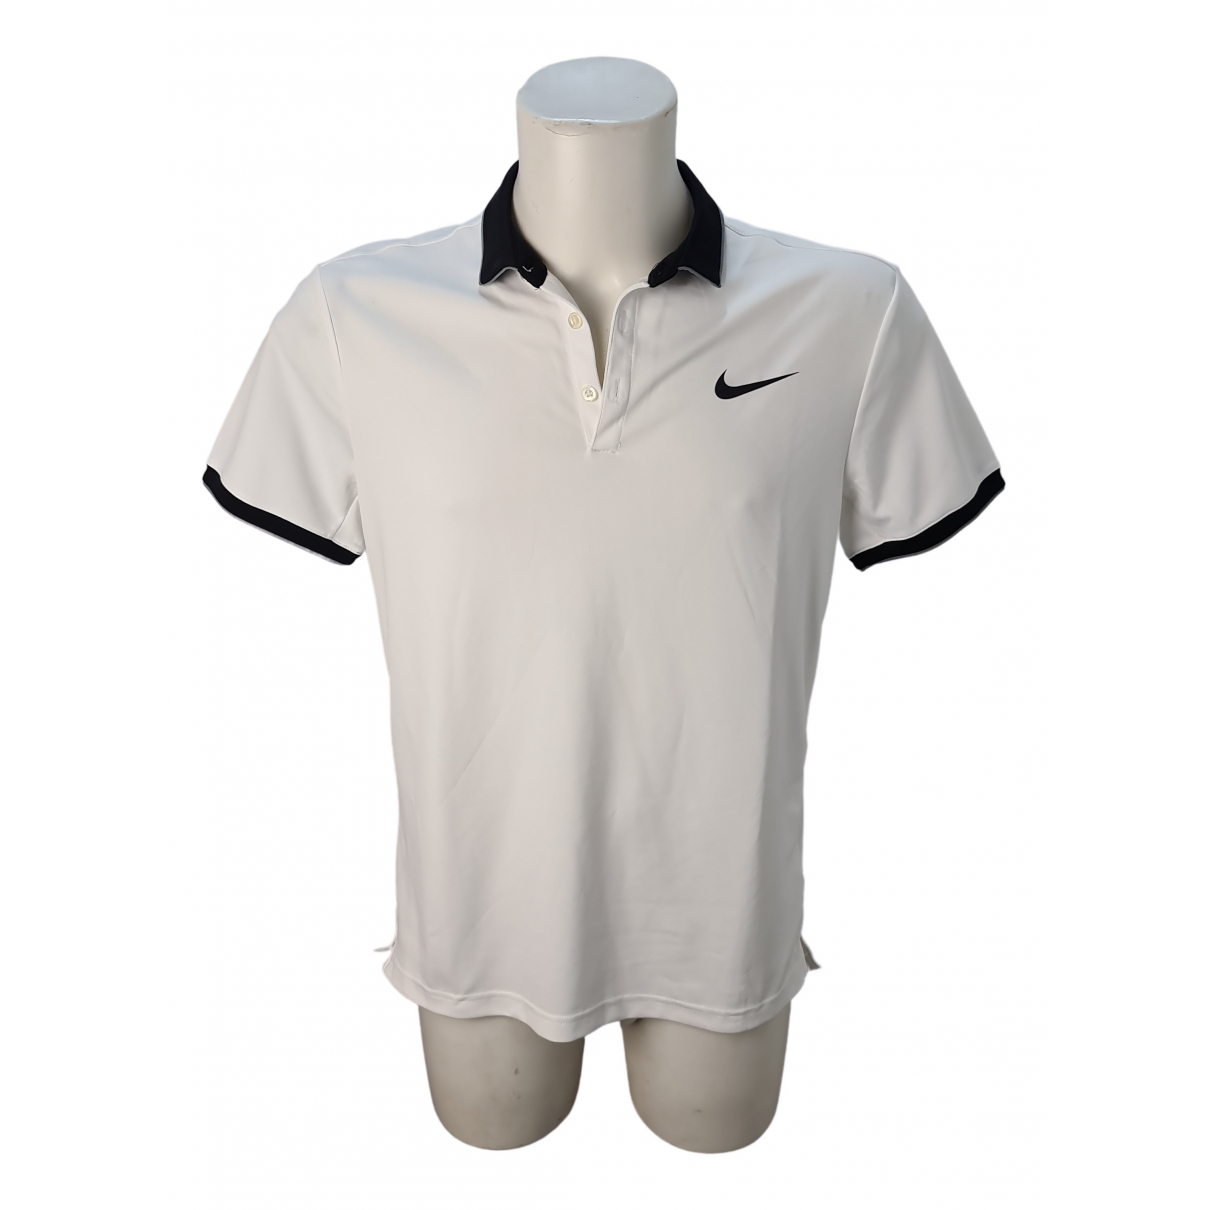 Nike \N Poloshirts in  Weiss Polyester